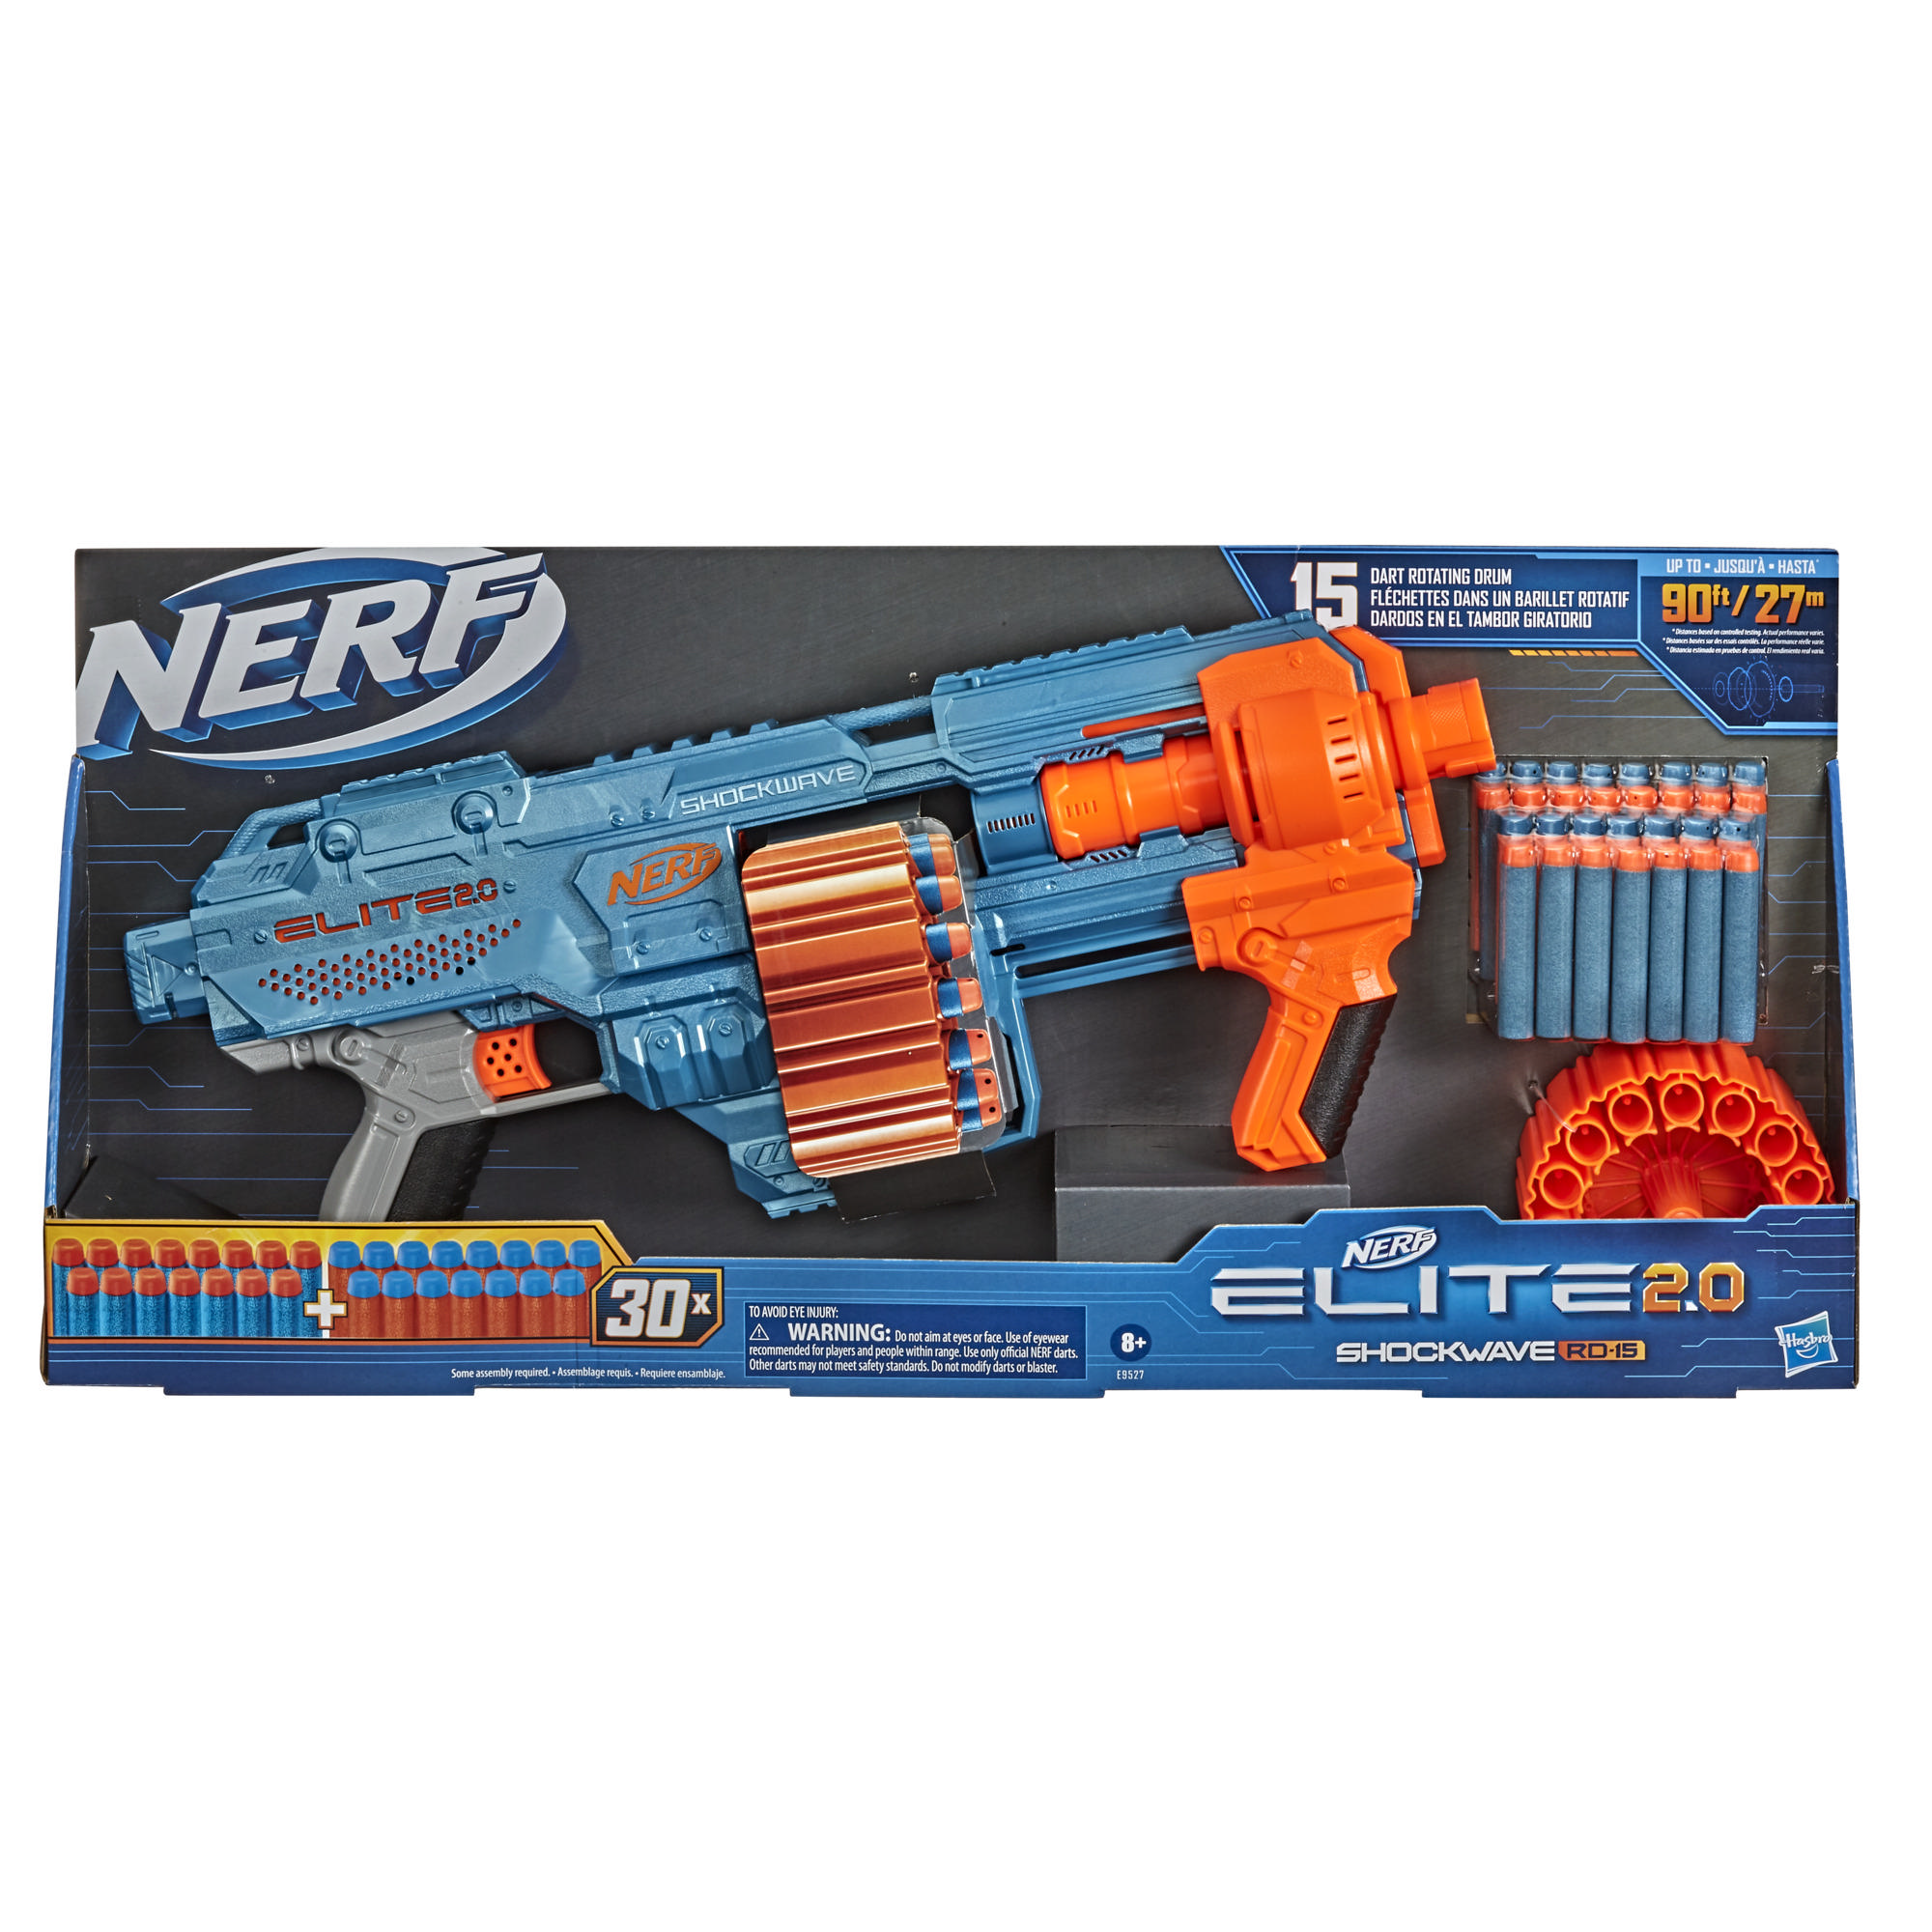 Nerf Elite 2.0 Shockwave RD-15 Blaster, 30 Nerf Darts, 15-Dart Rotating Drum, Customizing Capabilities